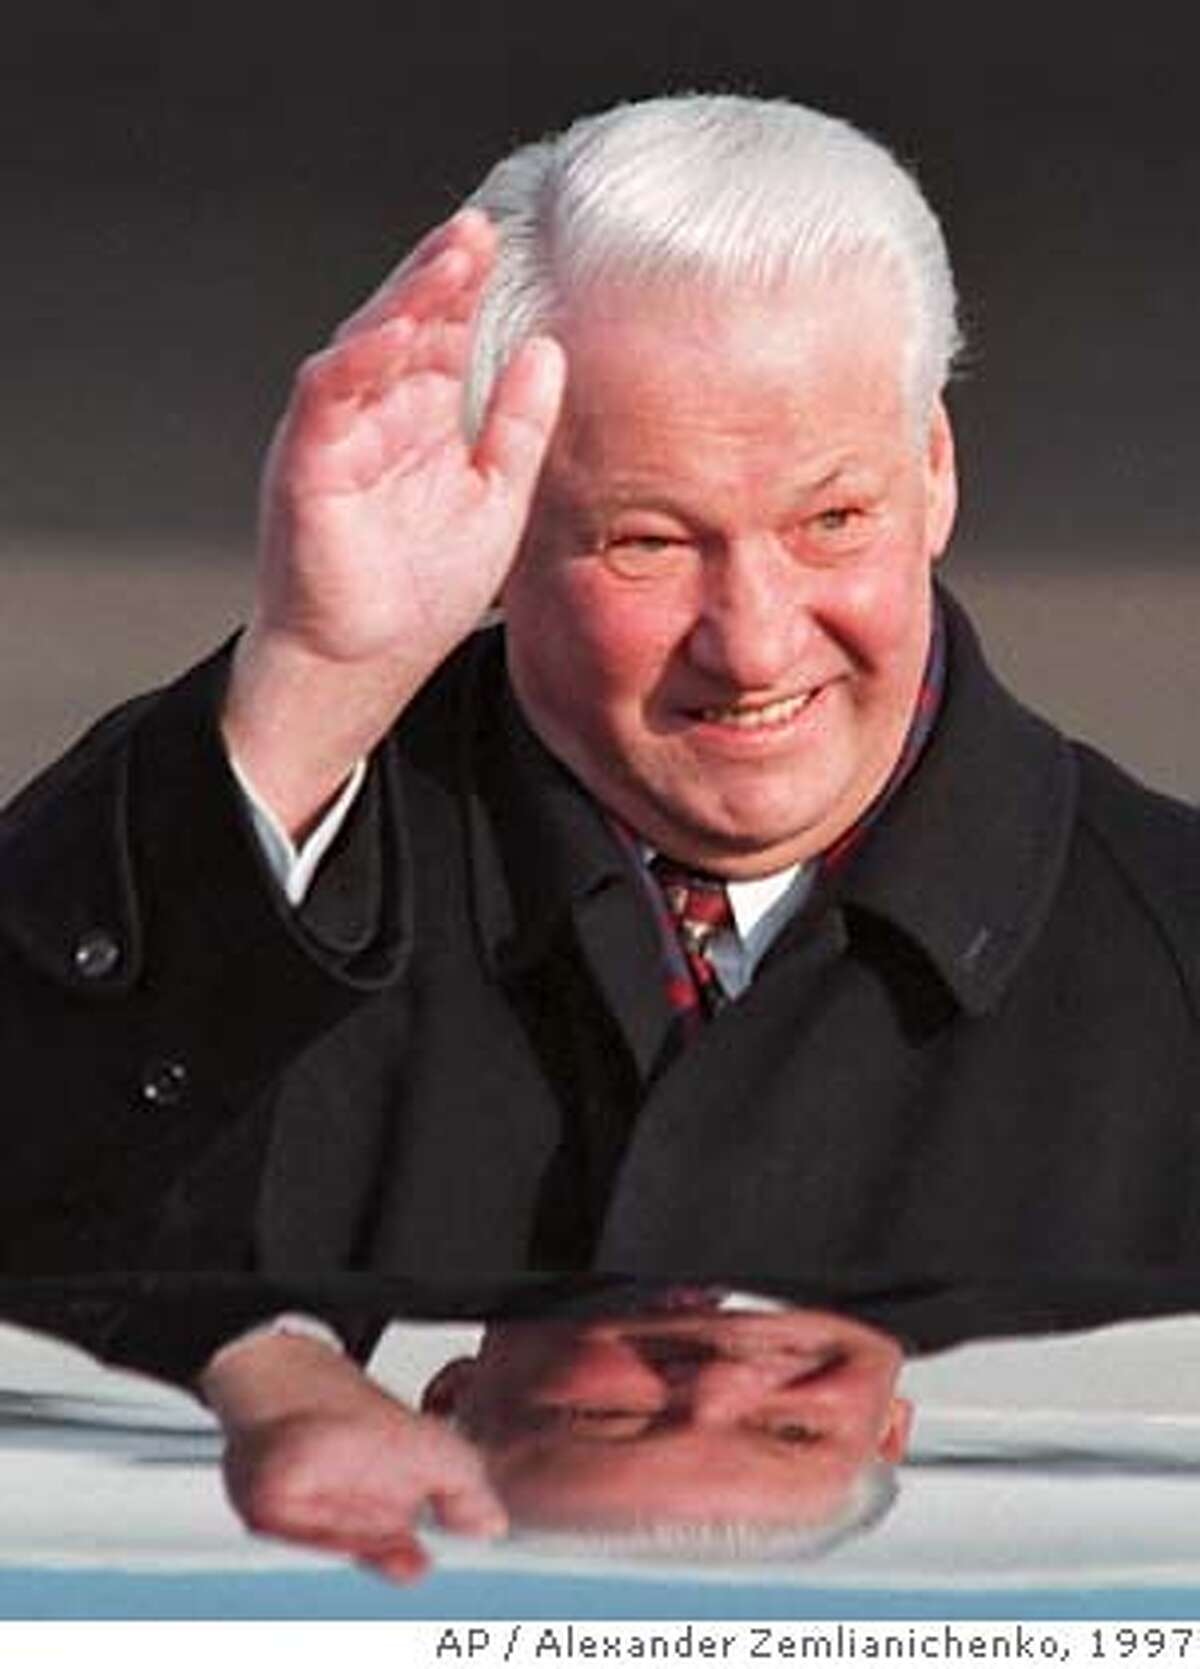 ** FILE ** Russian President Boris Yeltsin waves as he arrives at Helsinki airport in this Thursday, March 20, 1997 file photo. Yeltsin, who engineered the final collapse of the Soviet Union and pushed Russia to embrace democracy and a market economy, has died, a Kremlin official said Monday, April 23, 2007. He was 76. (AP Photo/Alexander Zemlianichenko) MARCH 20, 1997 FILE PHOTO